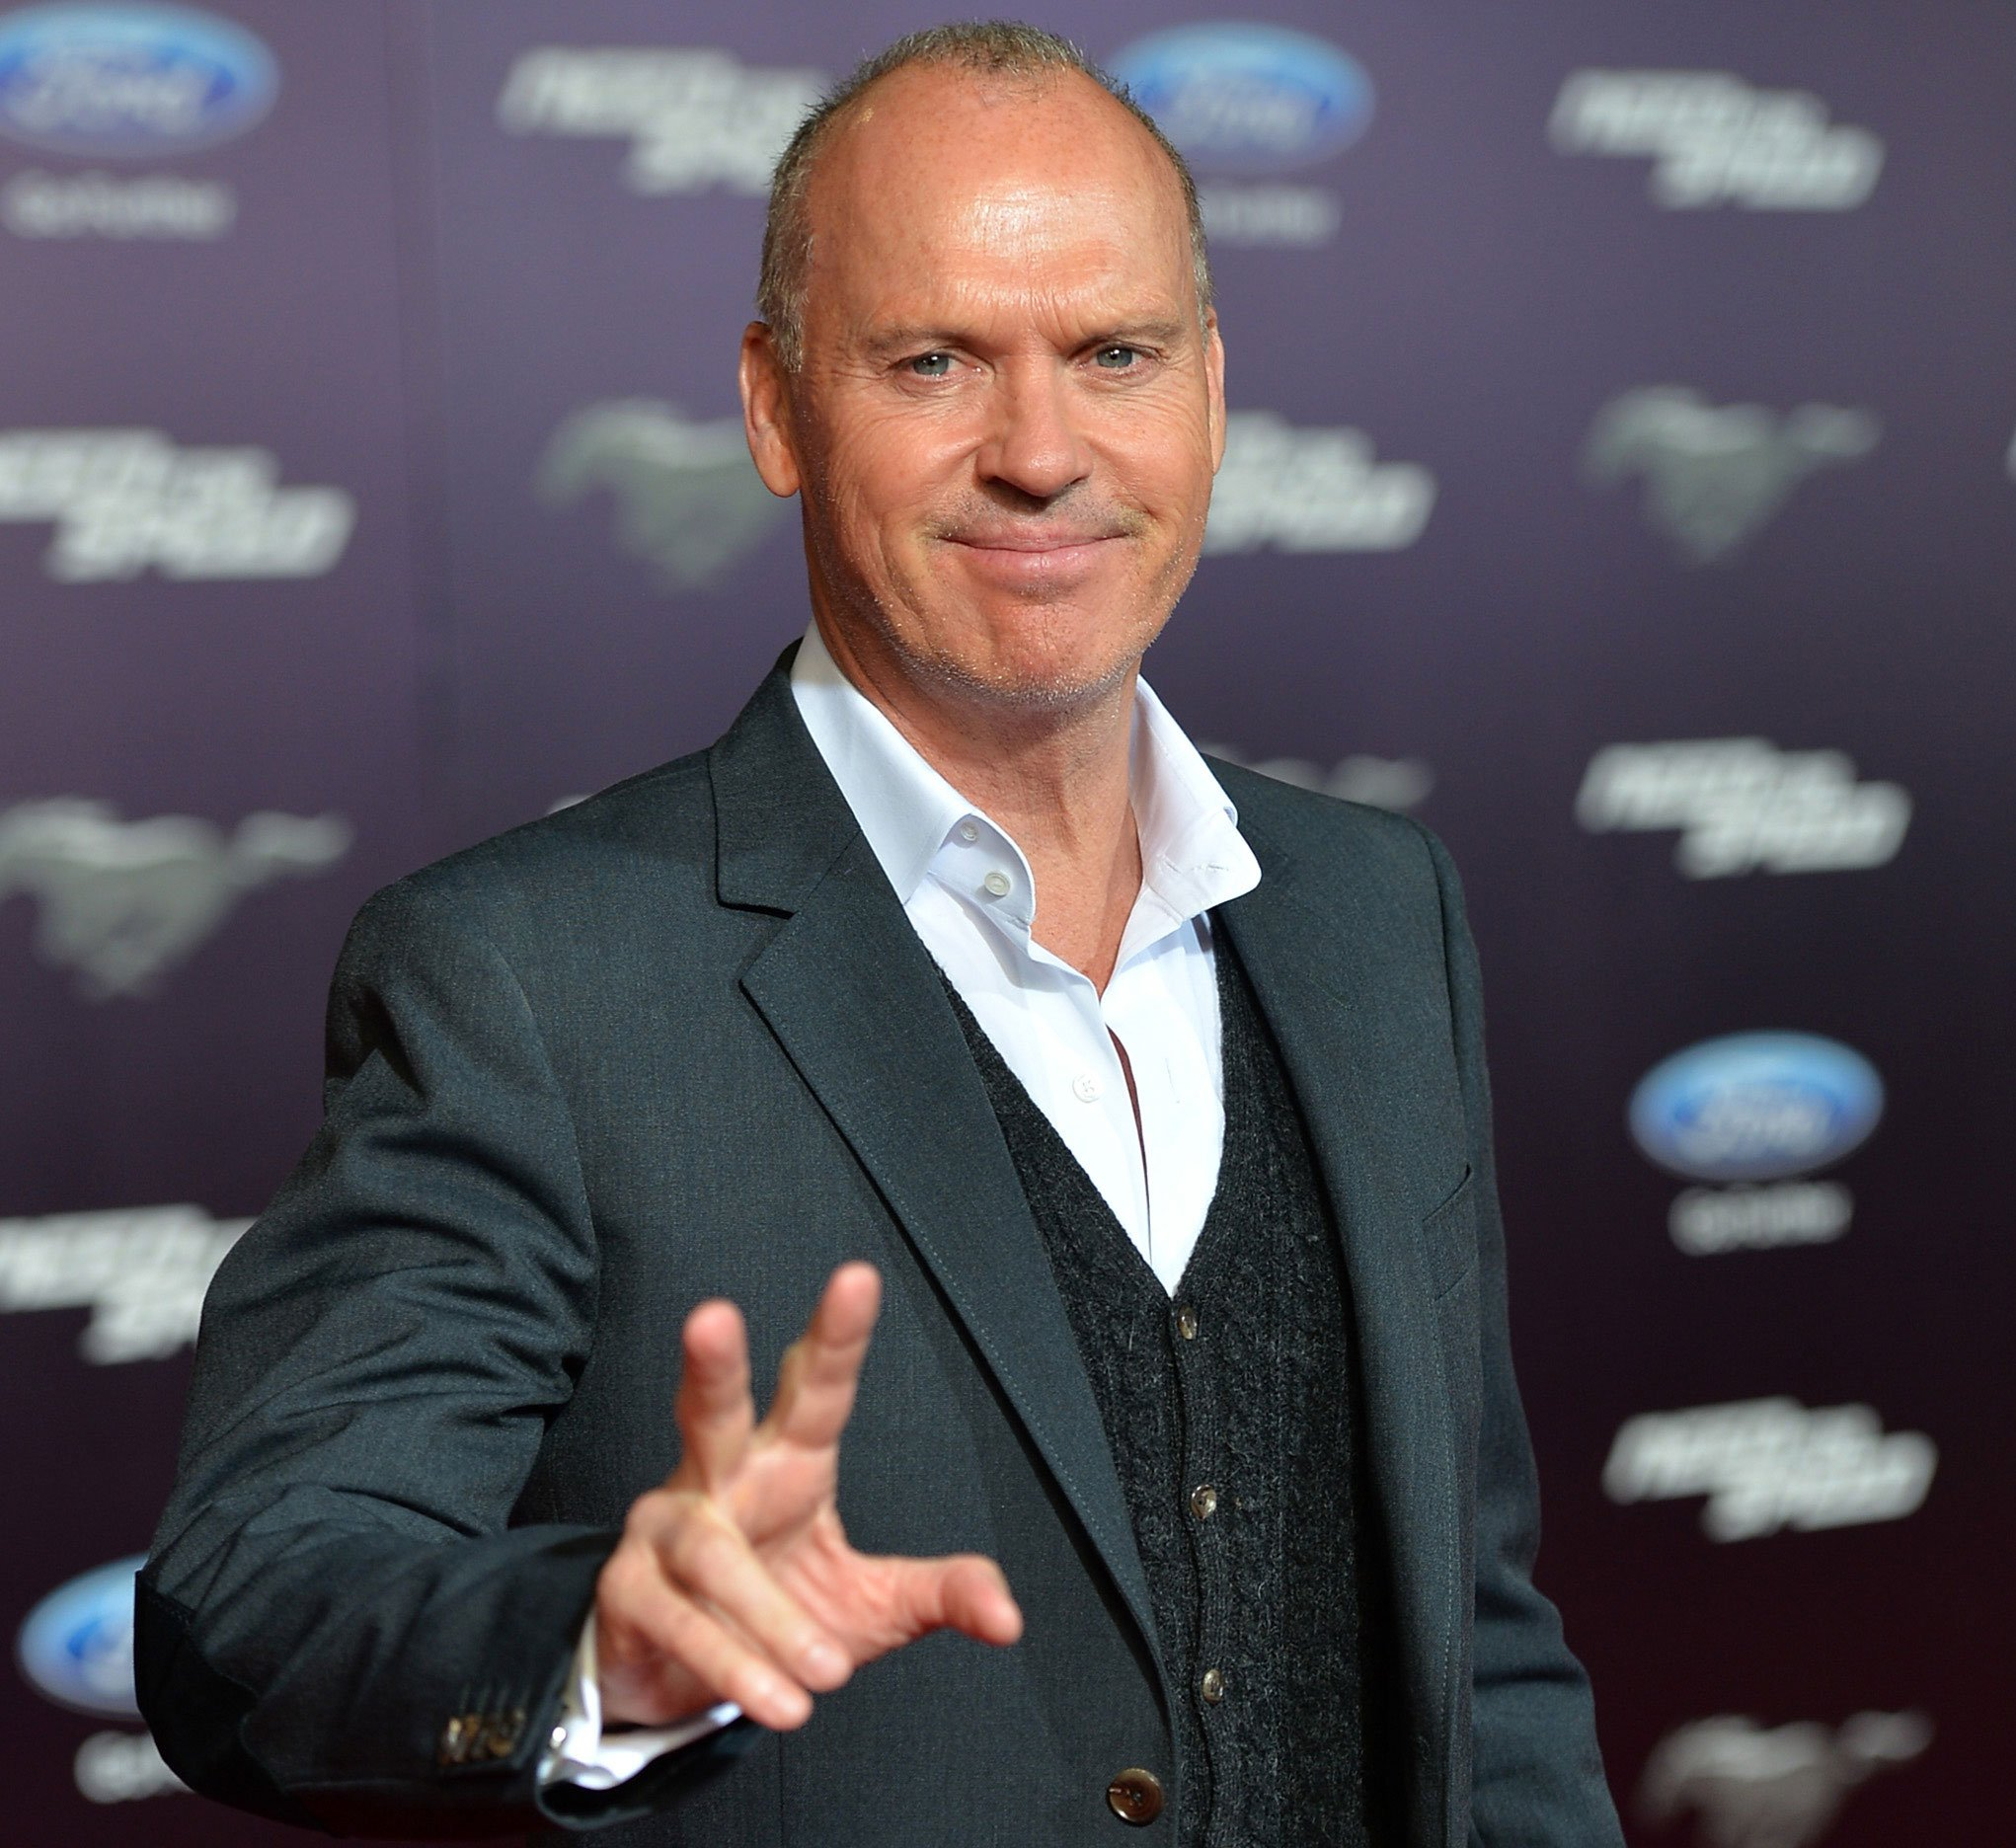 Michael Keaton on March 6, 2014